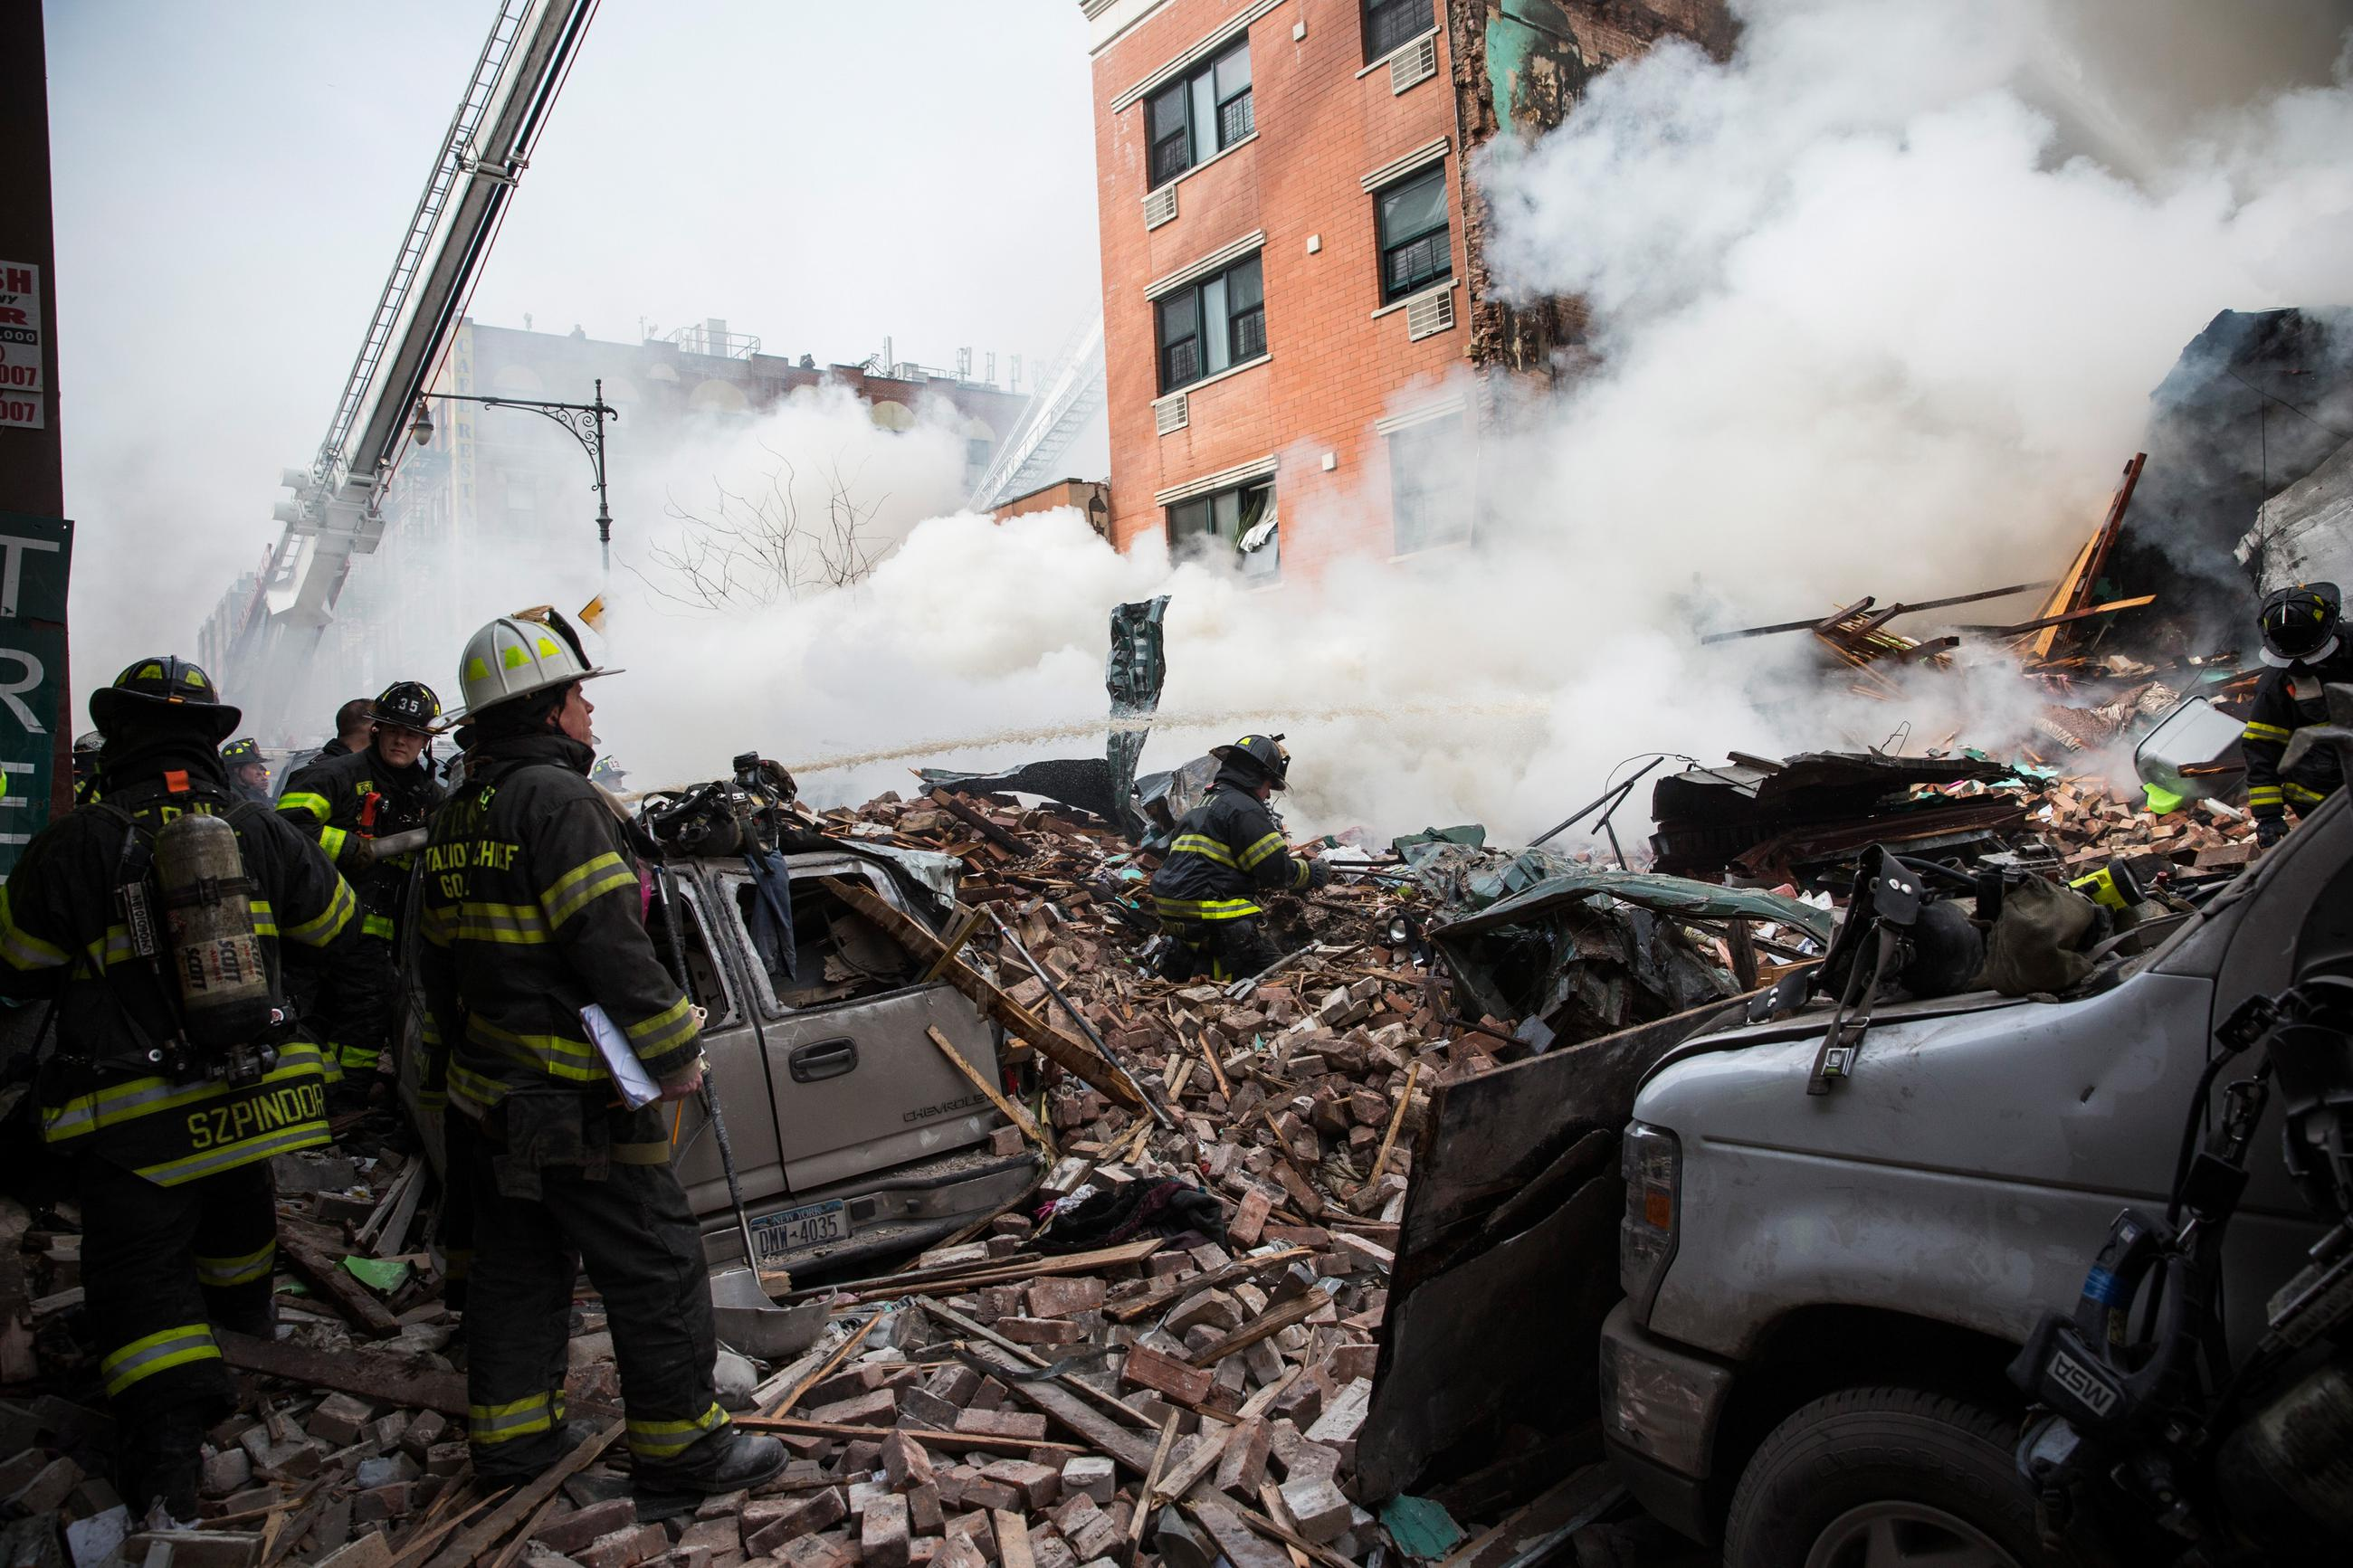 There's Been an Explosion and Building Collapse in New York City